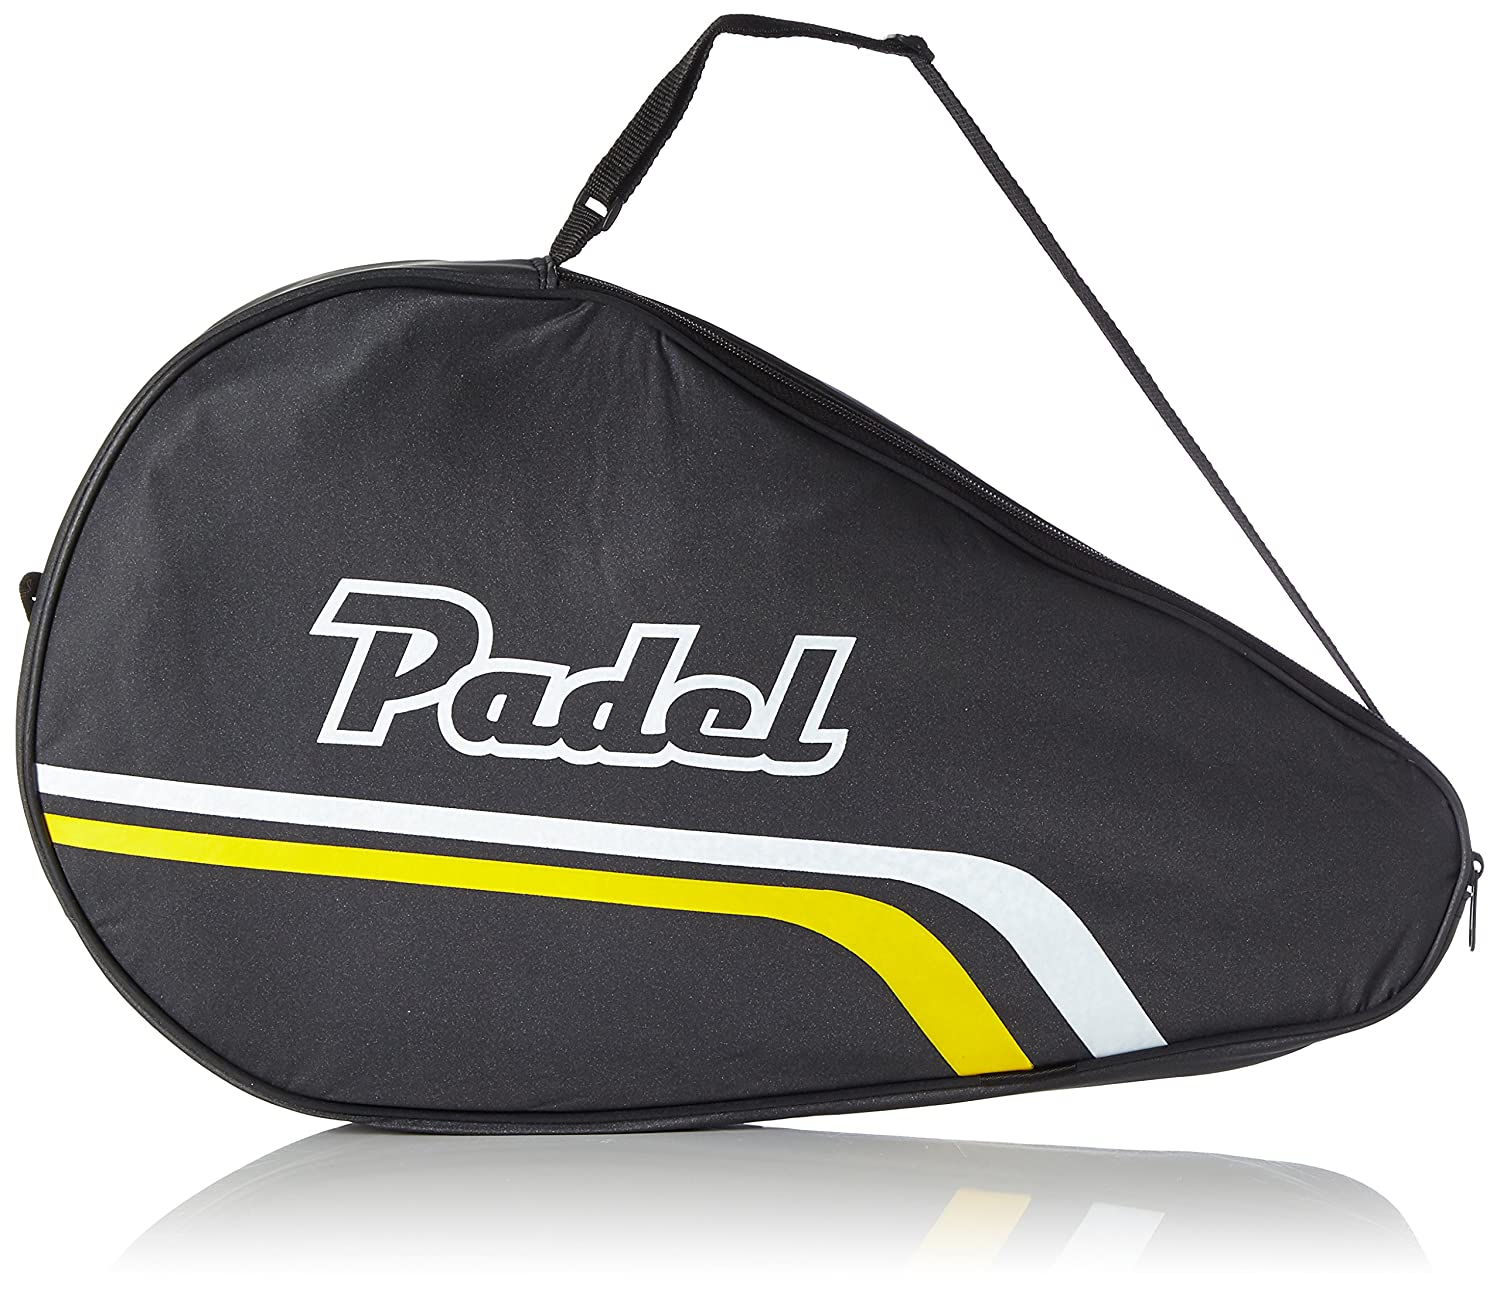 Softee - Funda Neutra Pala-Padel, color negro: Amazon.es: Deportes y aire libre